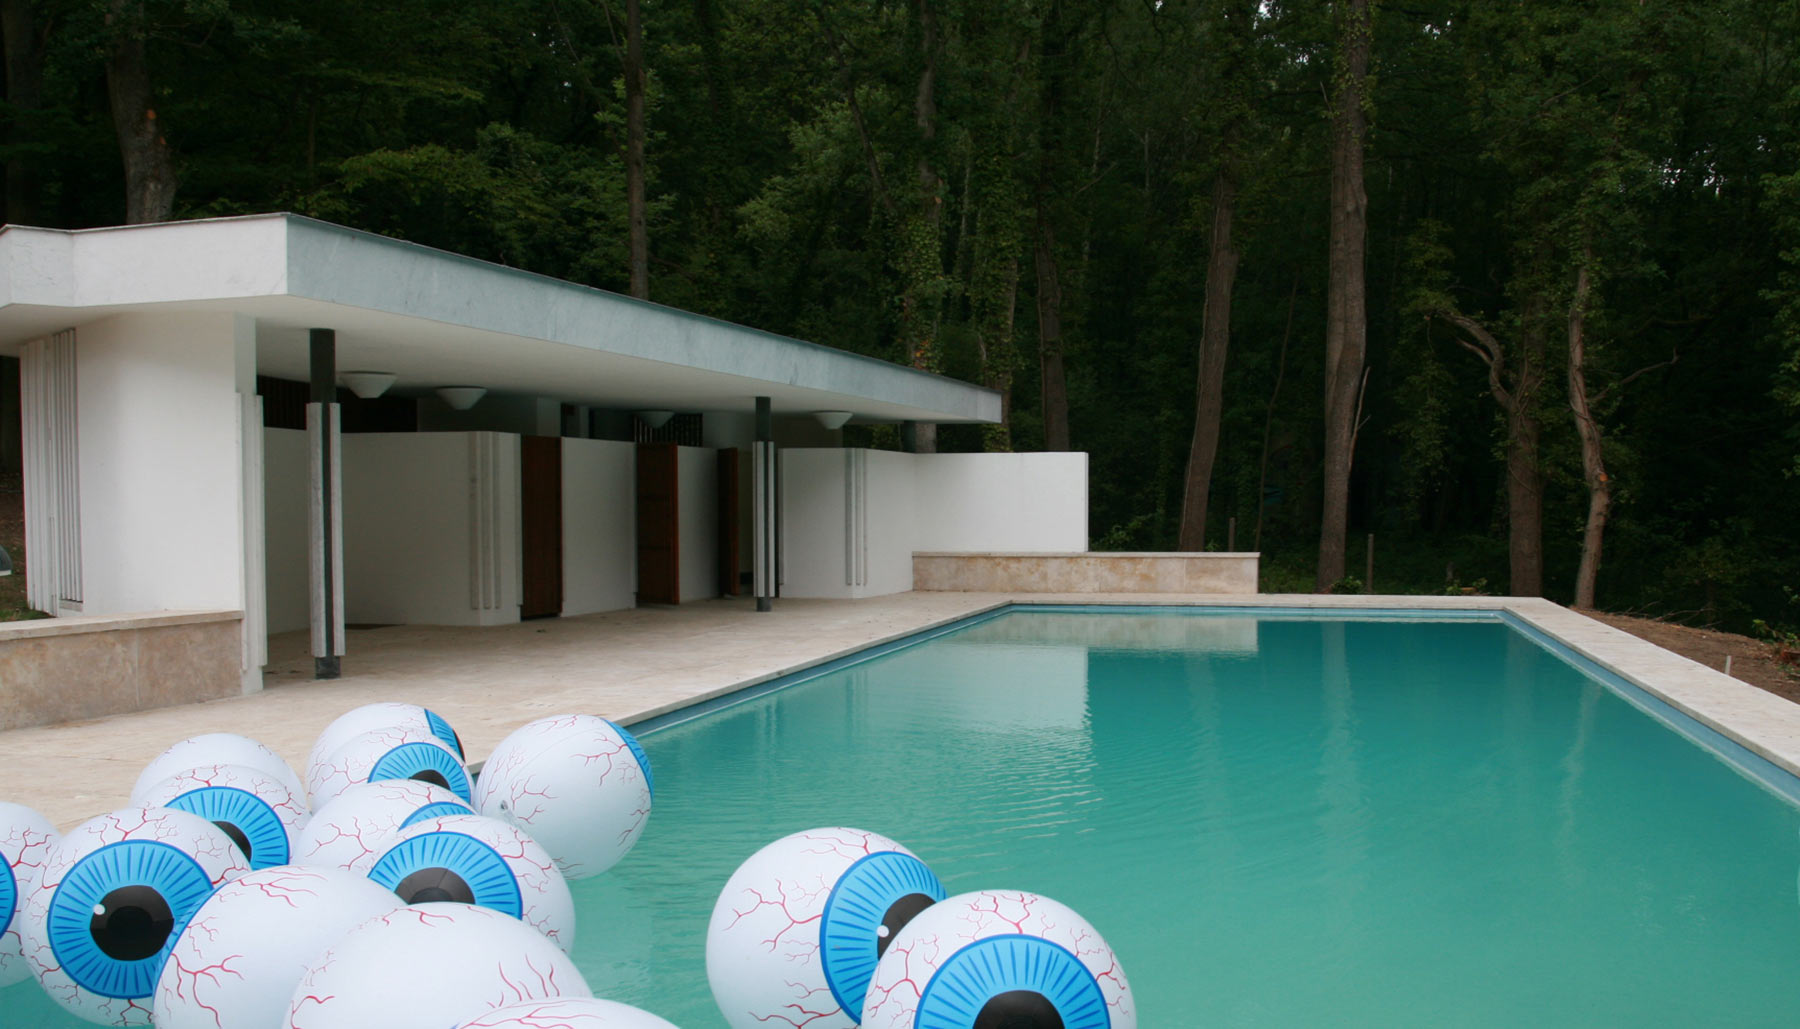 The Alvar Aalto Swimming Pool Maison Louis Carr 233 Chiara